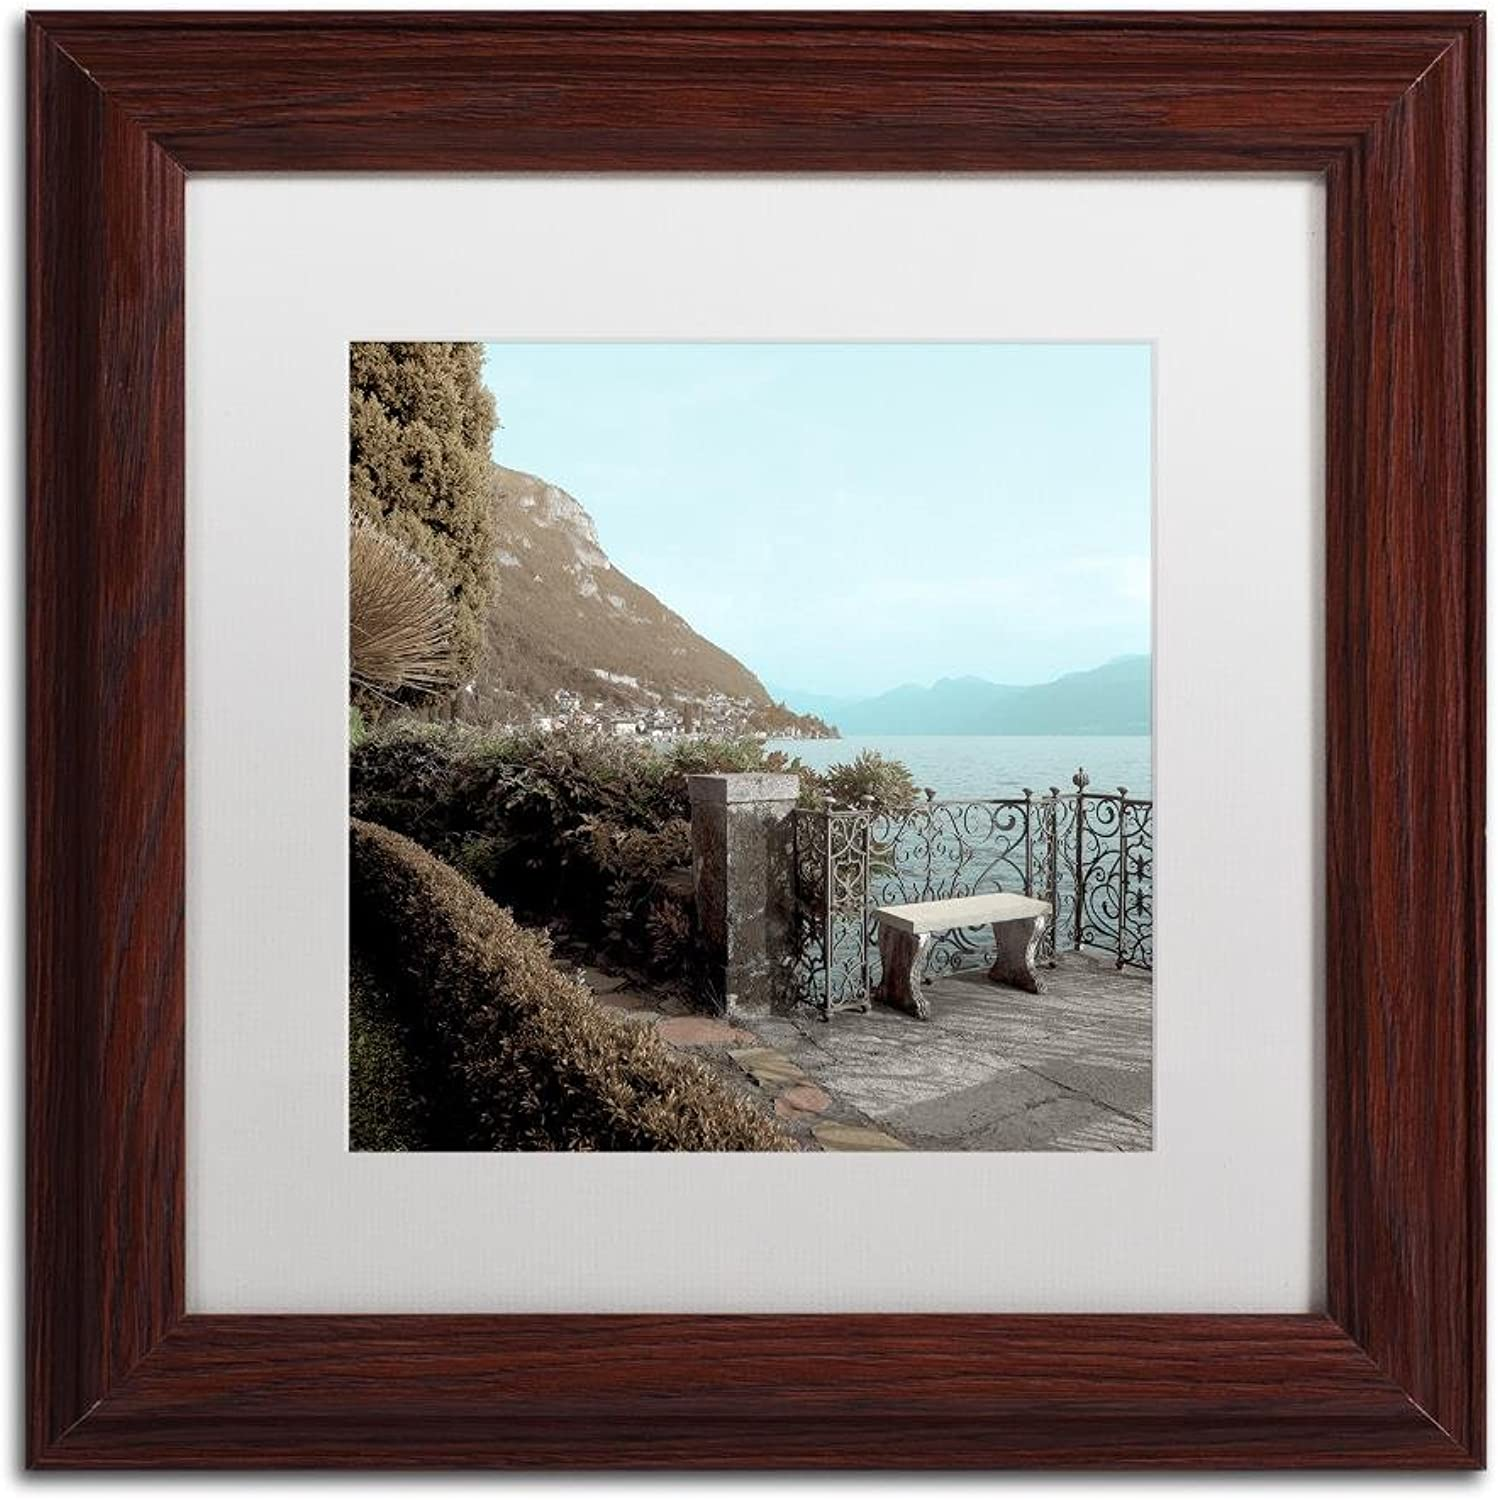 Trademark Fine Art Lake Vista IV by Alan bluestein, White Matte, Wood Frame 11x11